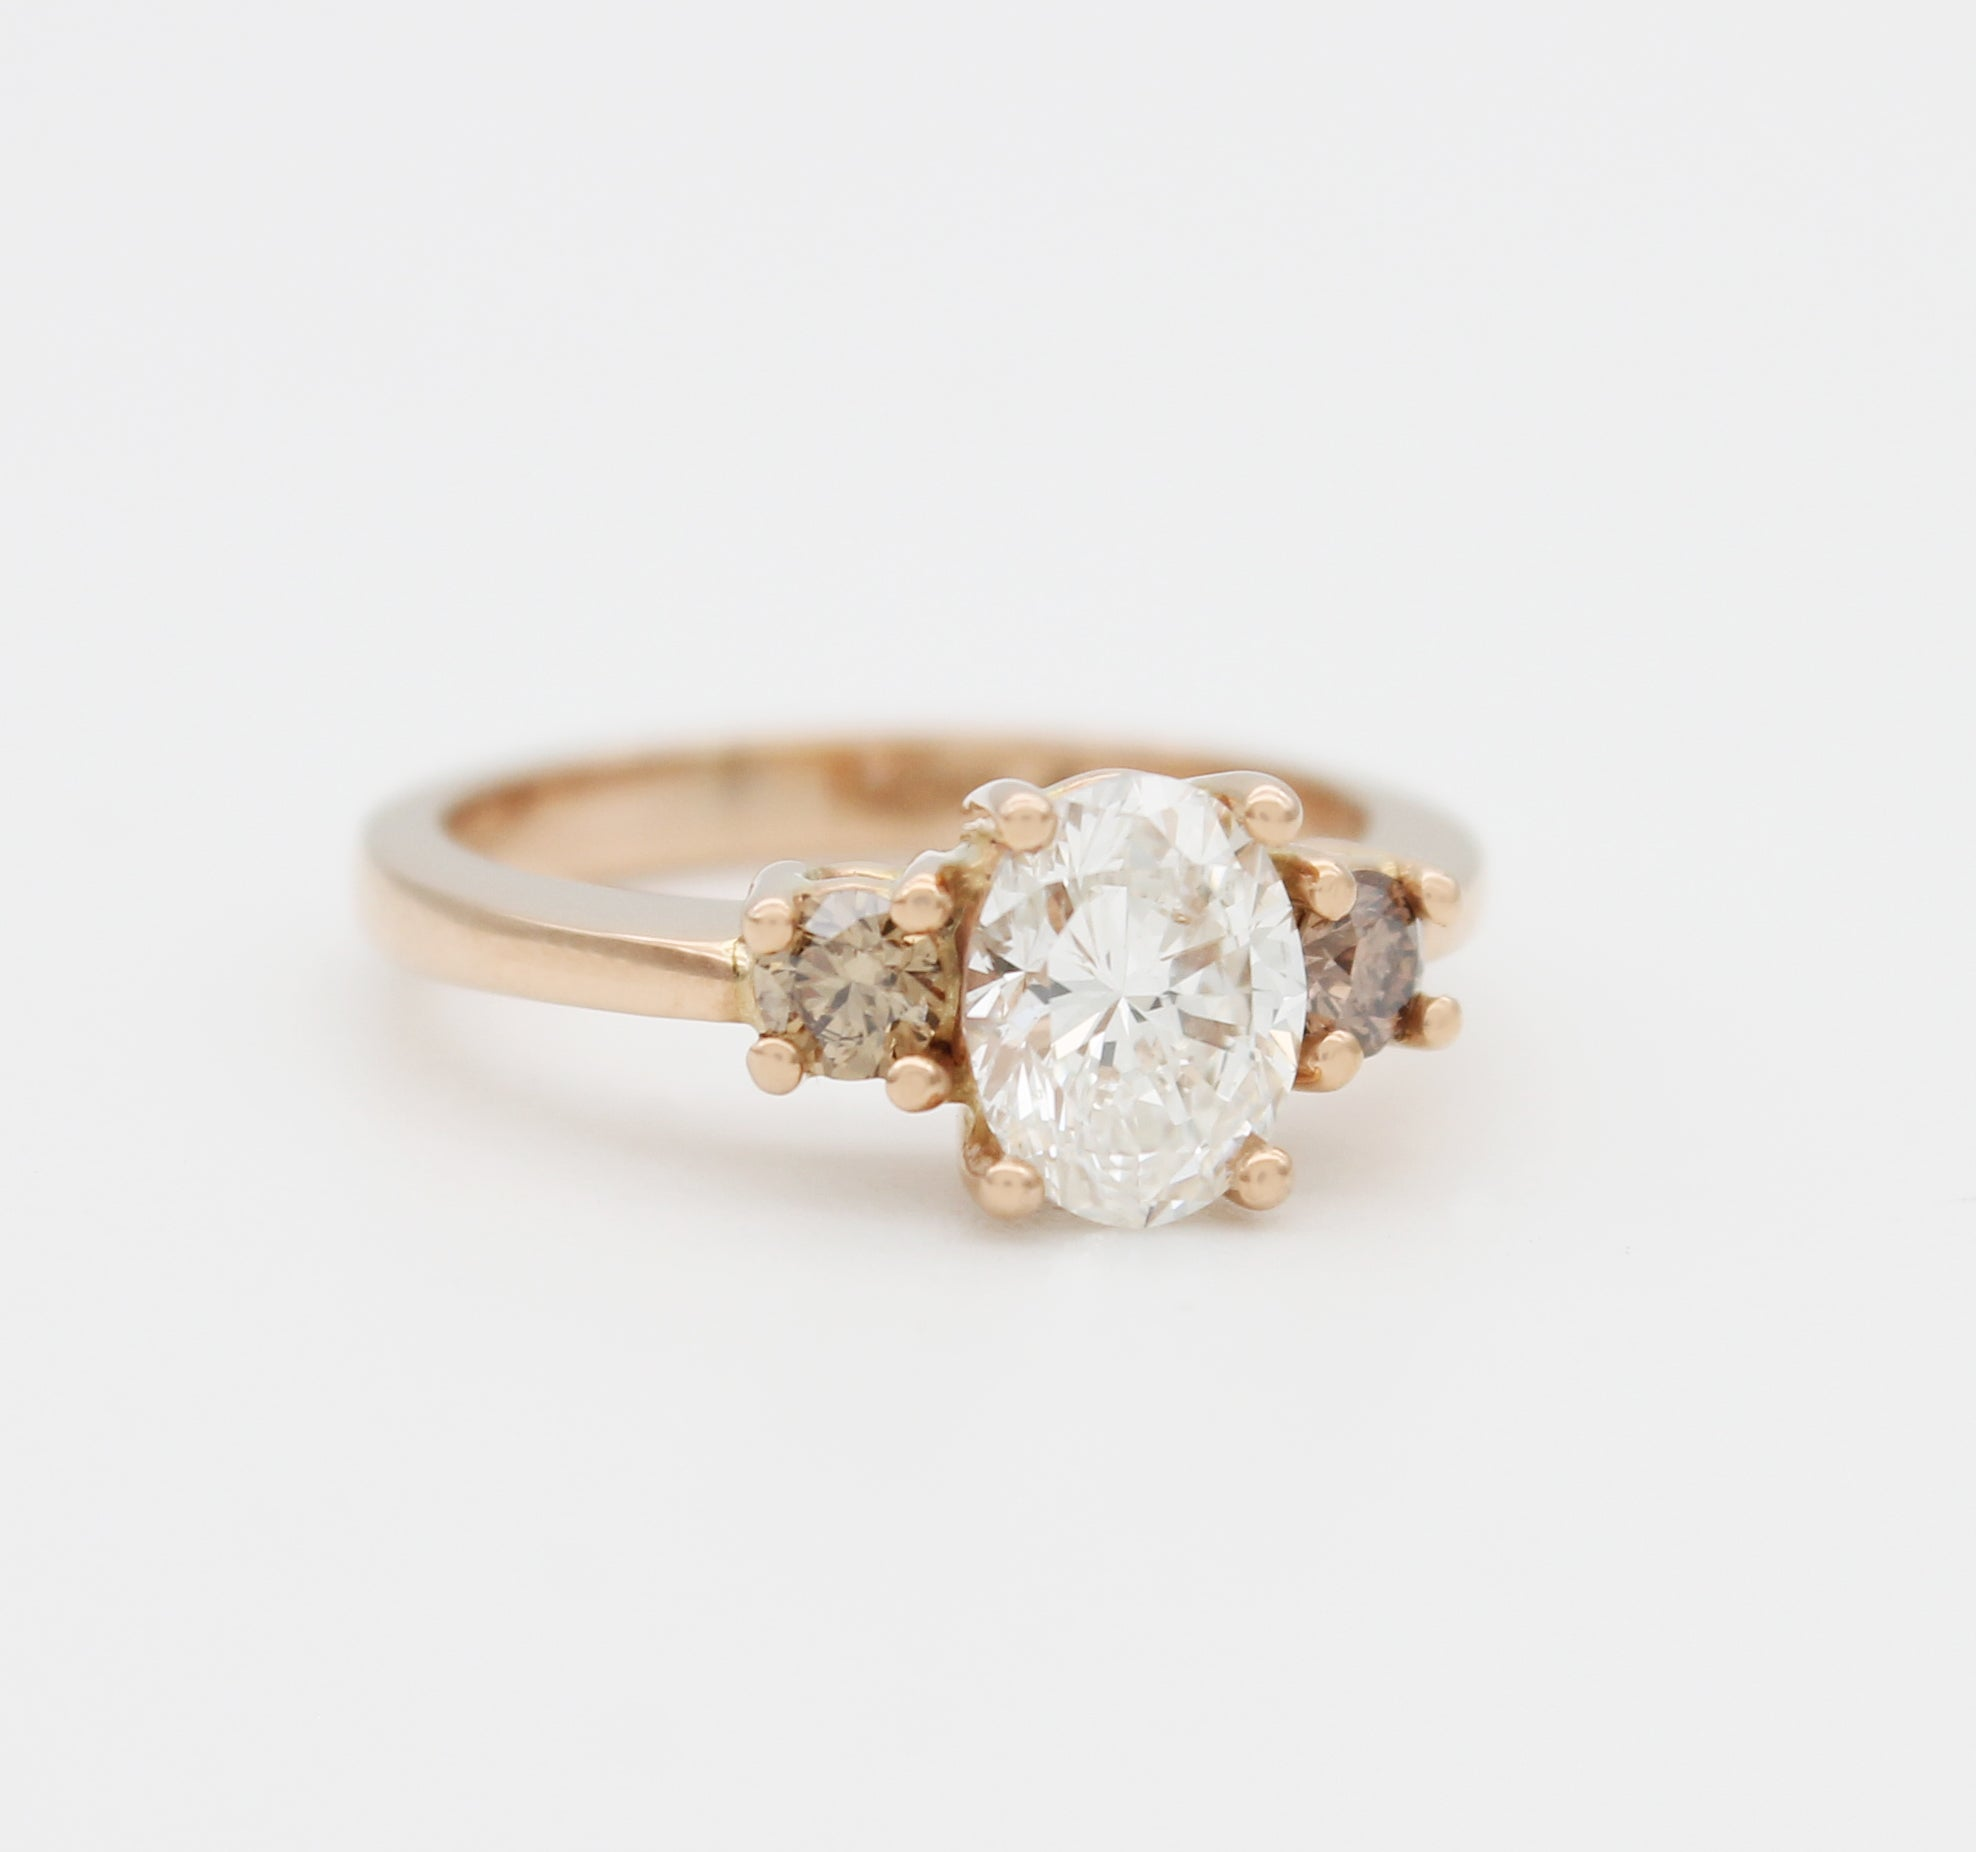 Oval diamond cognac champagne rose gold trilogy ring